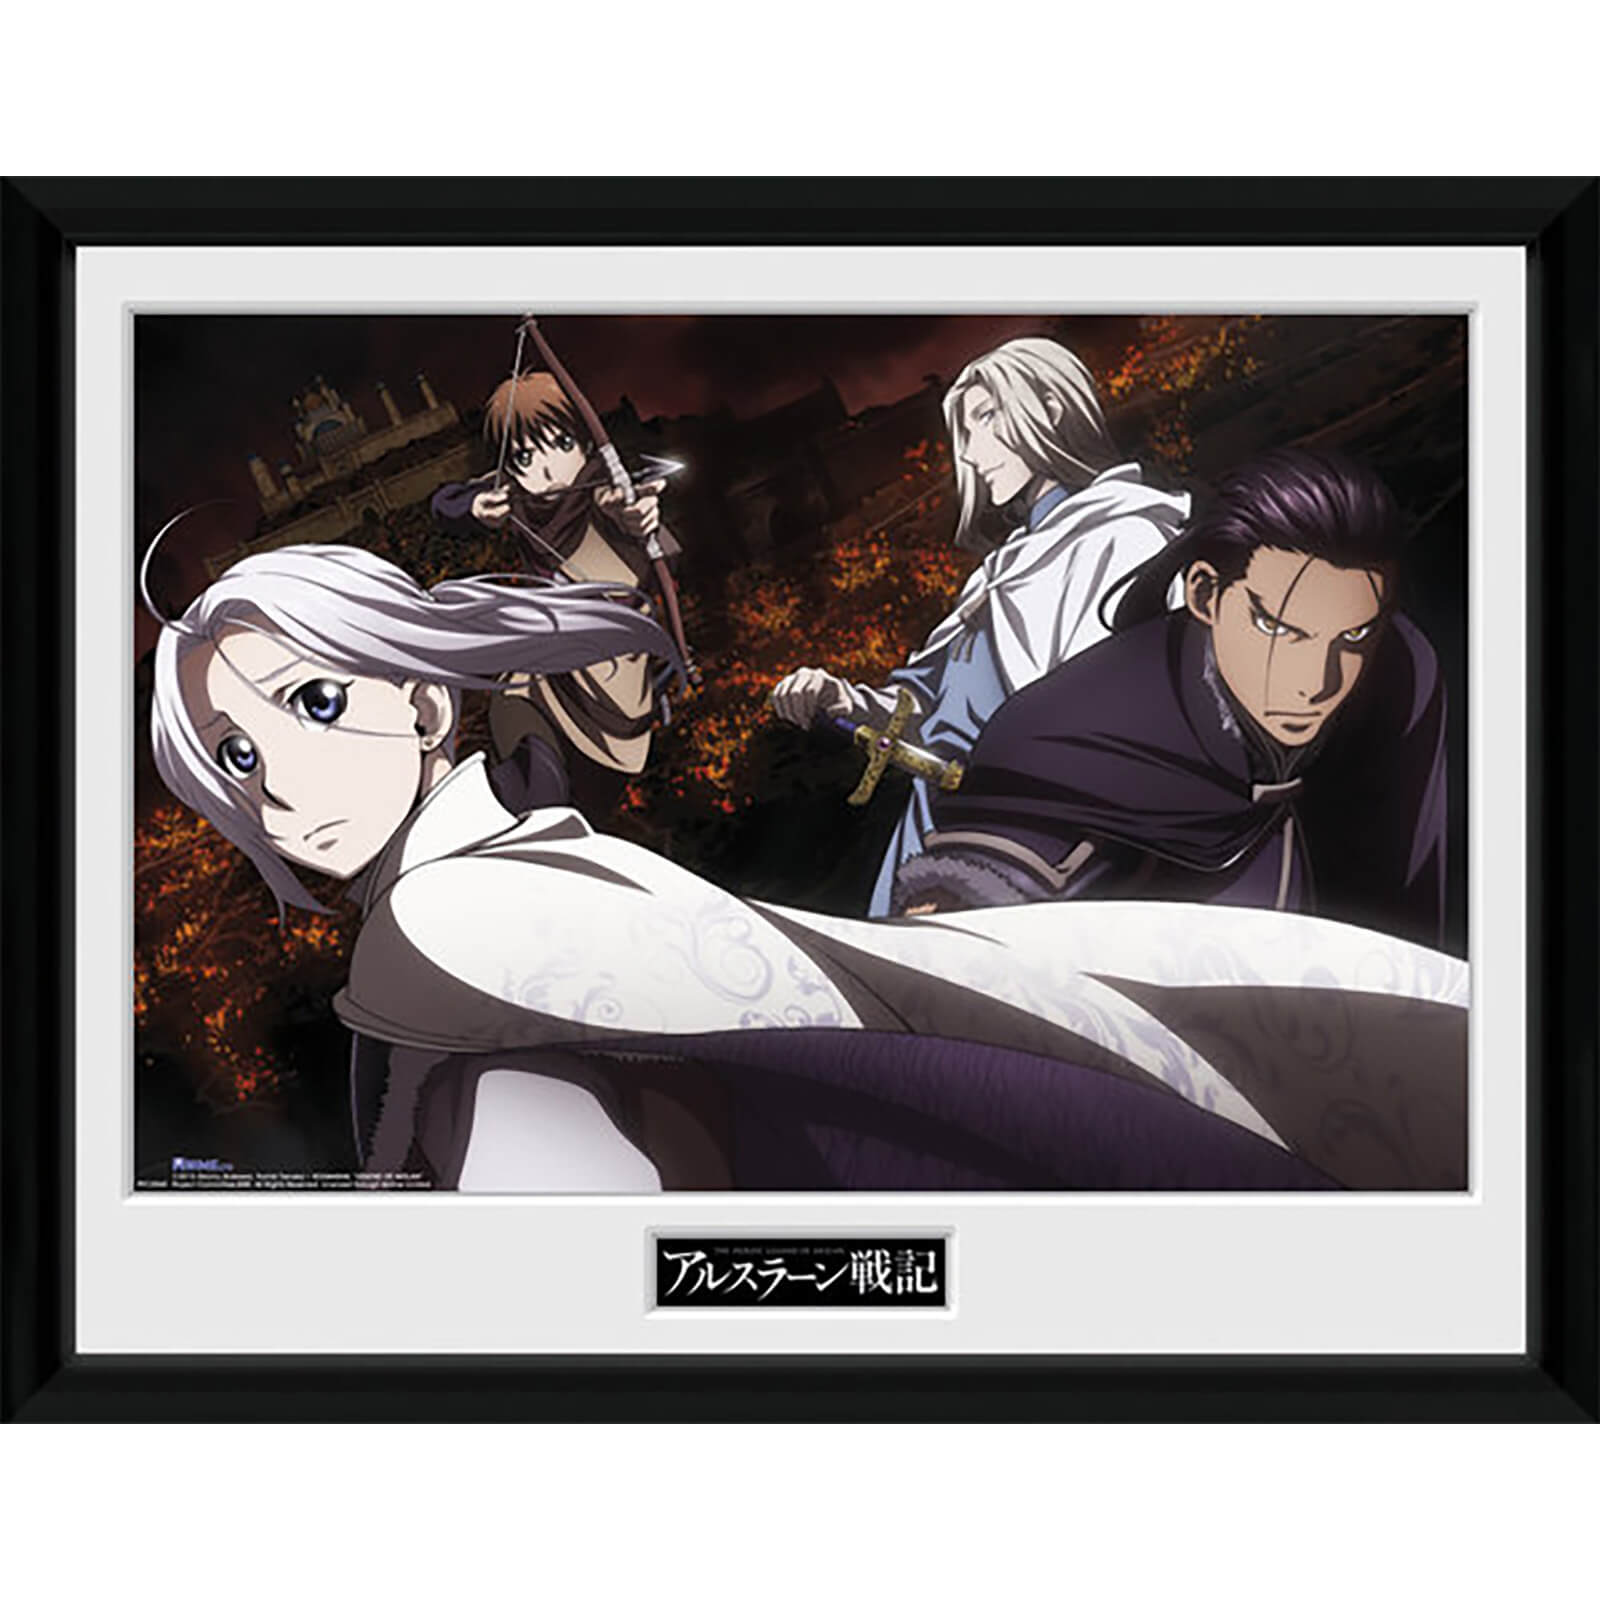 The Legend of Arslan Group Landscape - 16 x 12 Inches Framed Photograph